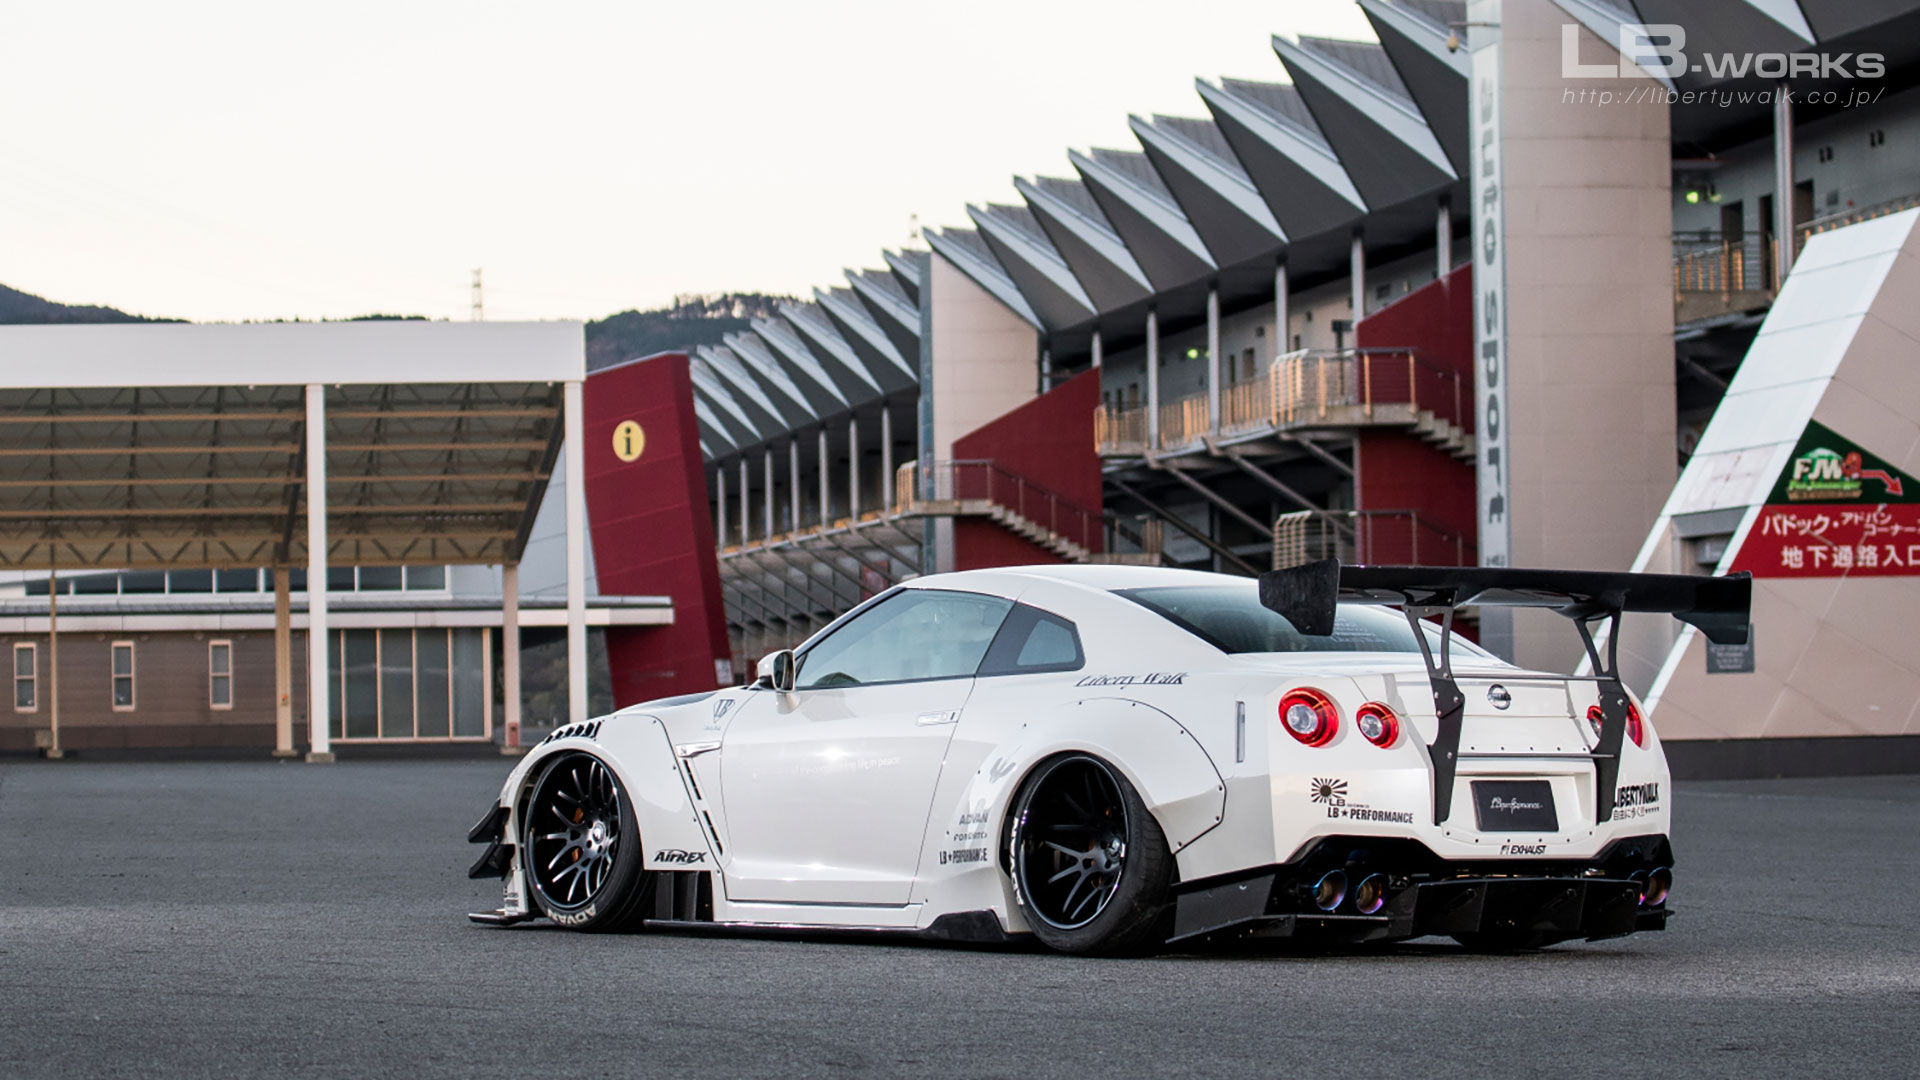 __ARY5471 LB-WORKS NISSAN GT-R R35 type 2